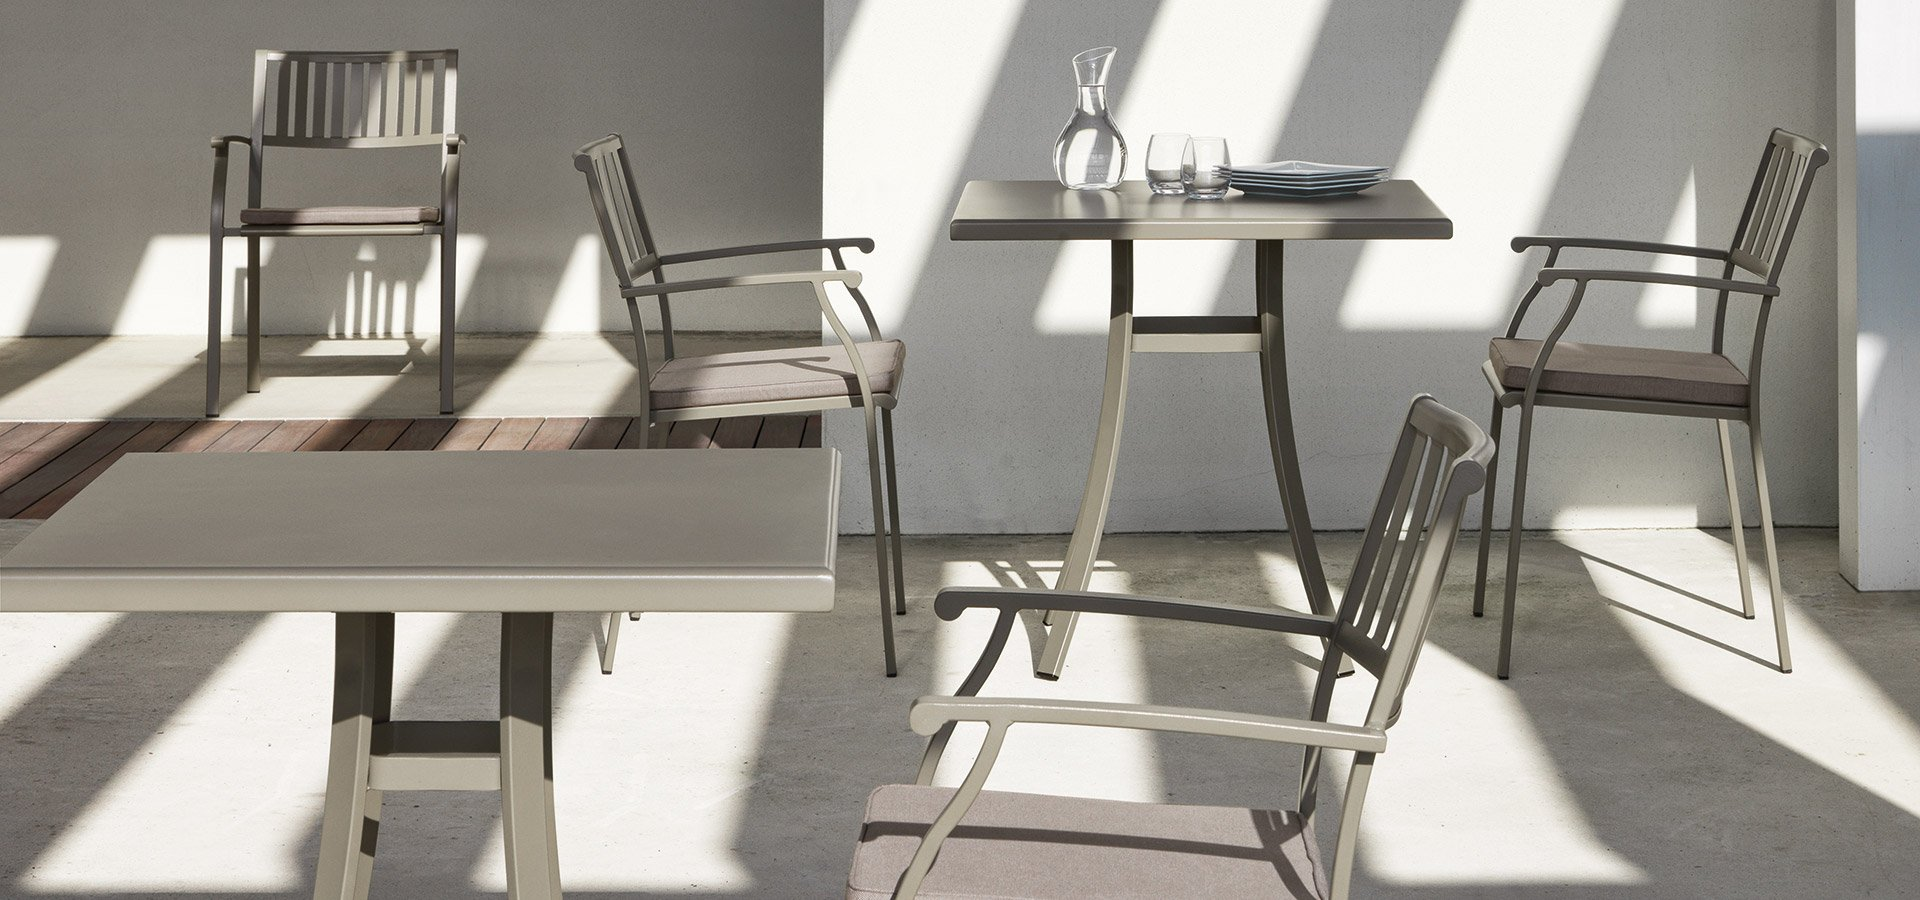 Elisir Dining Chair from Ethimo, designed by Ethimo Studio